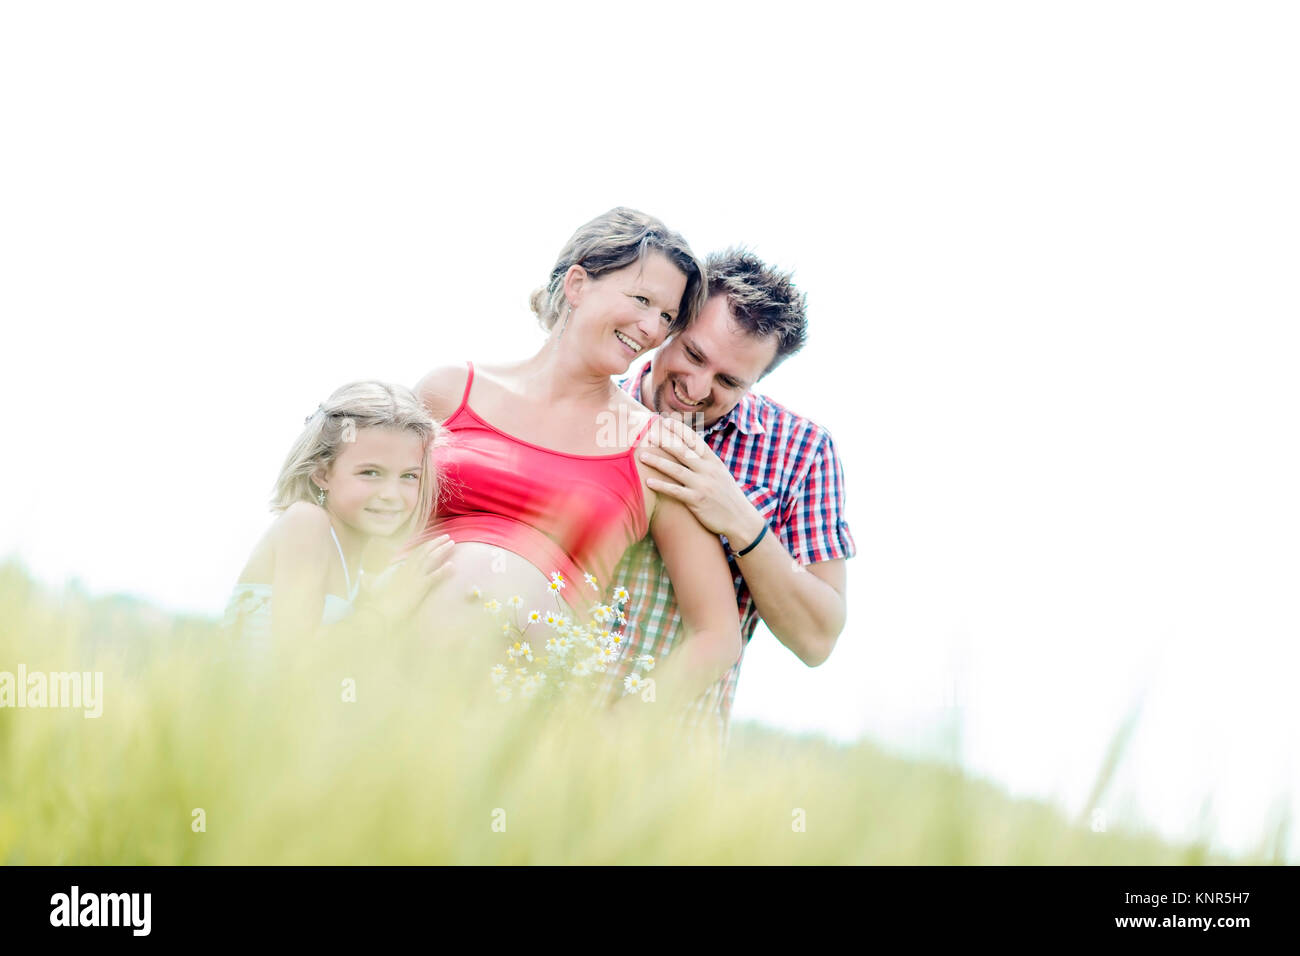 Schwangere Frau mit Mann und Tochter - pregnant woman with family Stock Photo